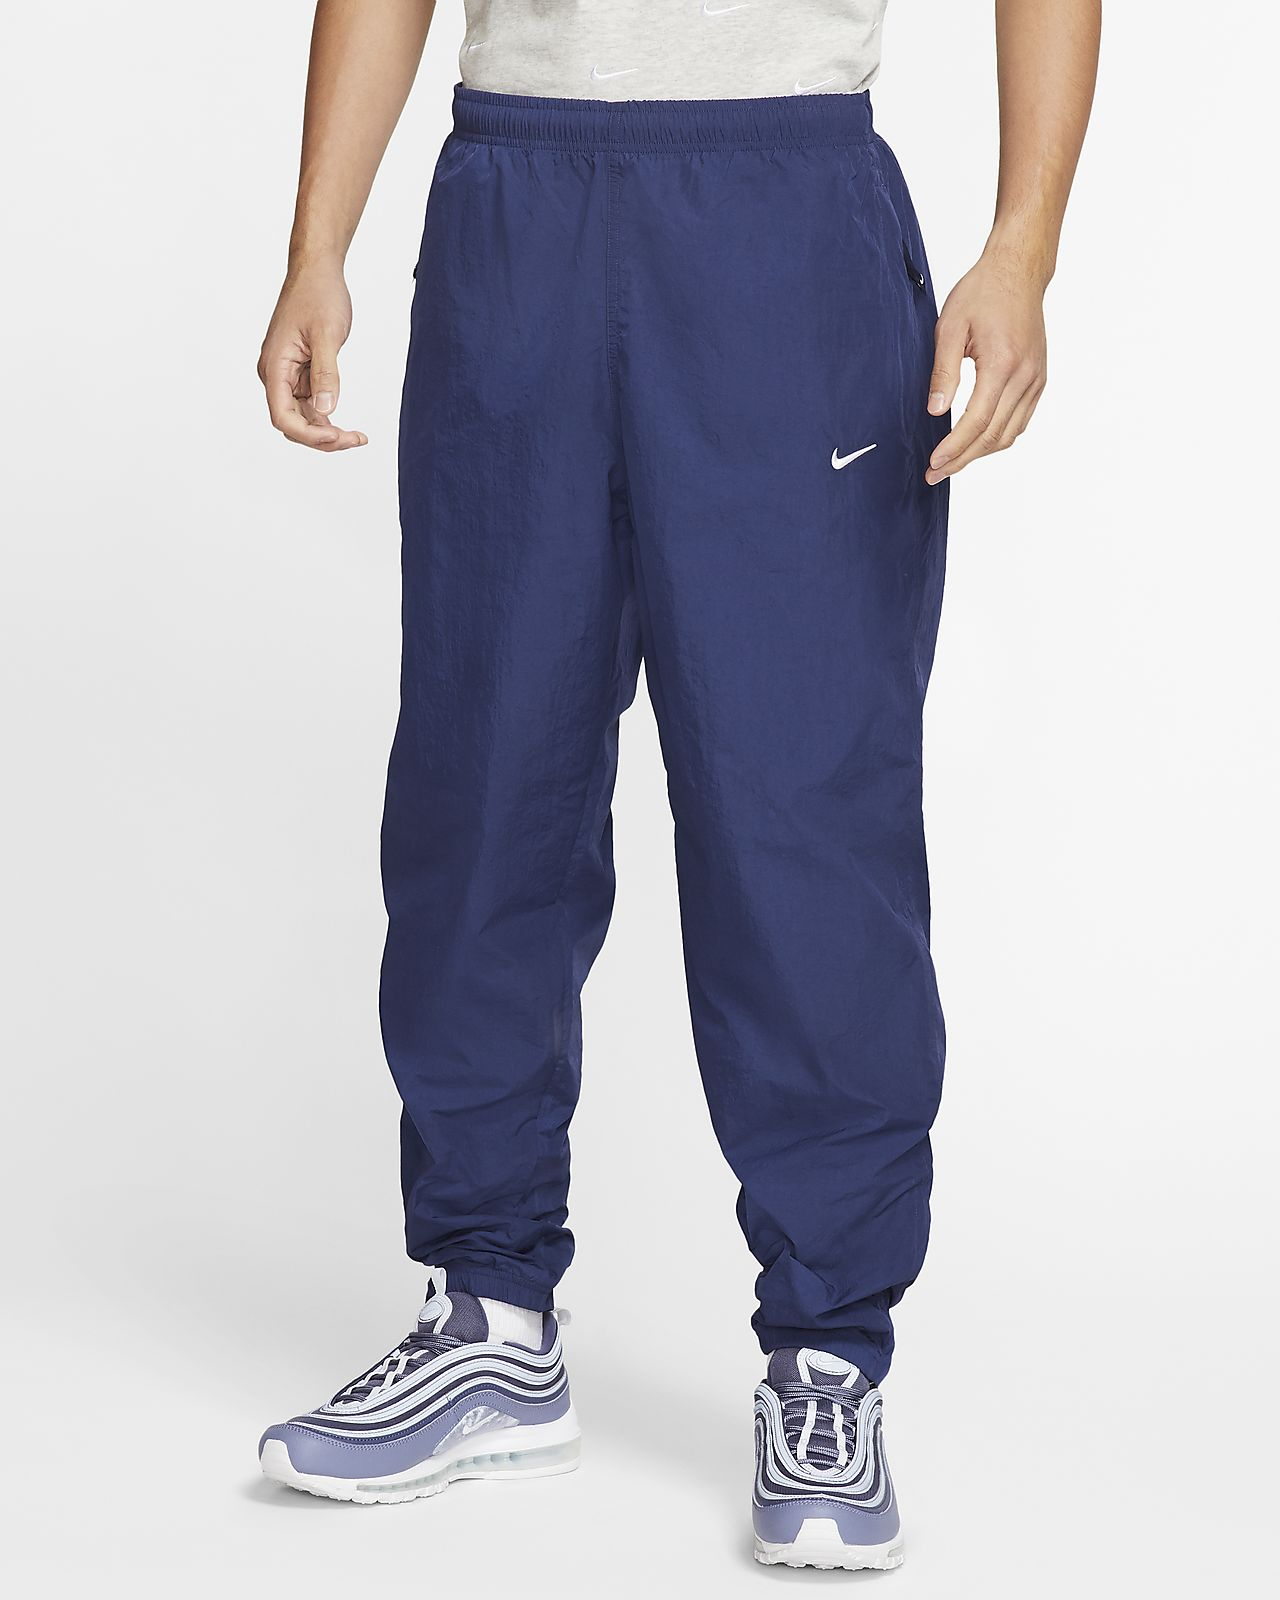 save up to 80% 100% top quality hot sales NikeLab Men's Tracksuit Bottoms. Nike SI